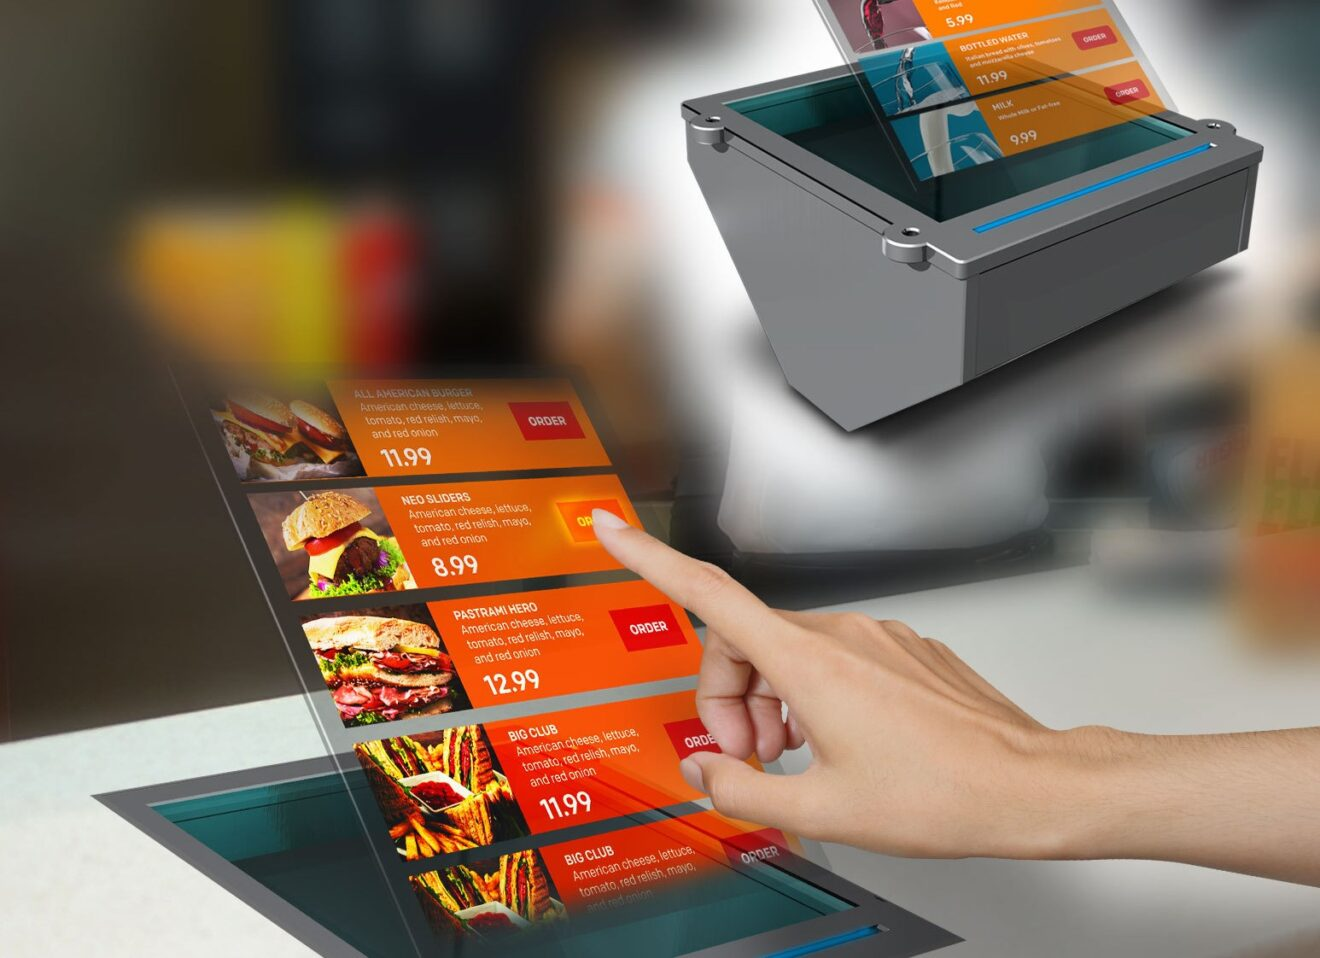 Will Holographic Ordering Solutions Be the Next Big Thing in Contactless Restaurant Technology?